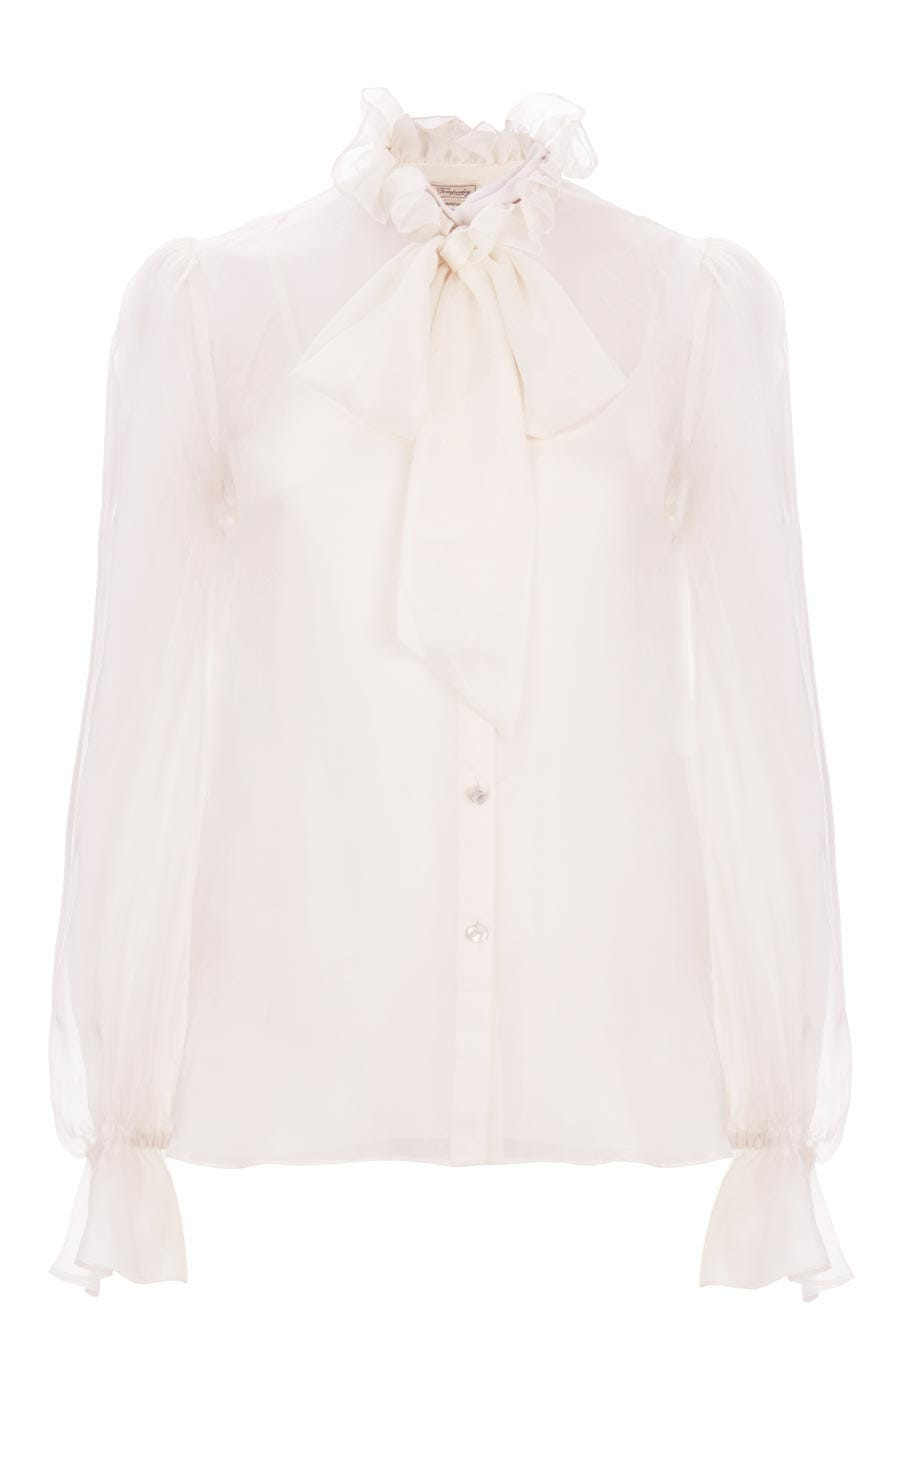 Costume Silk Shirt, White